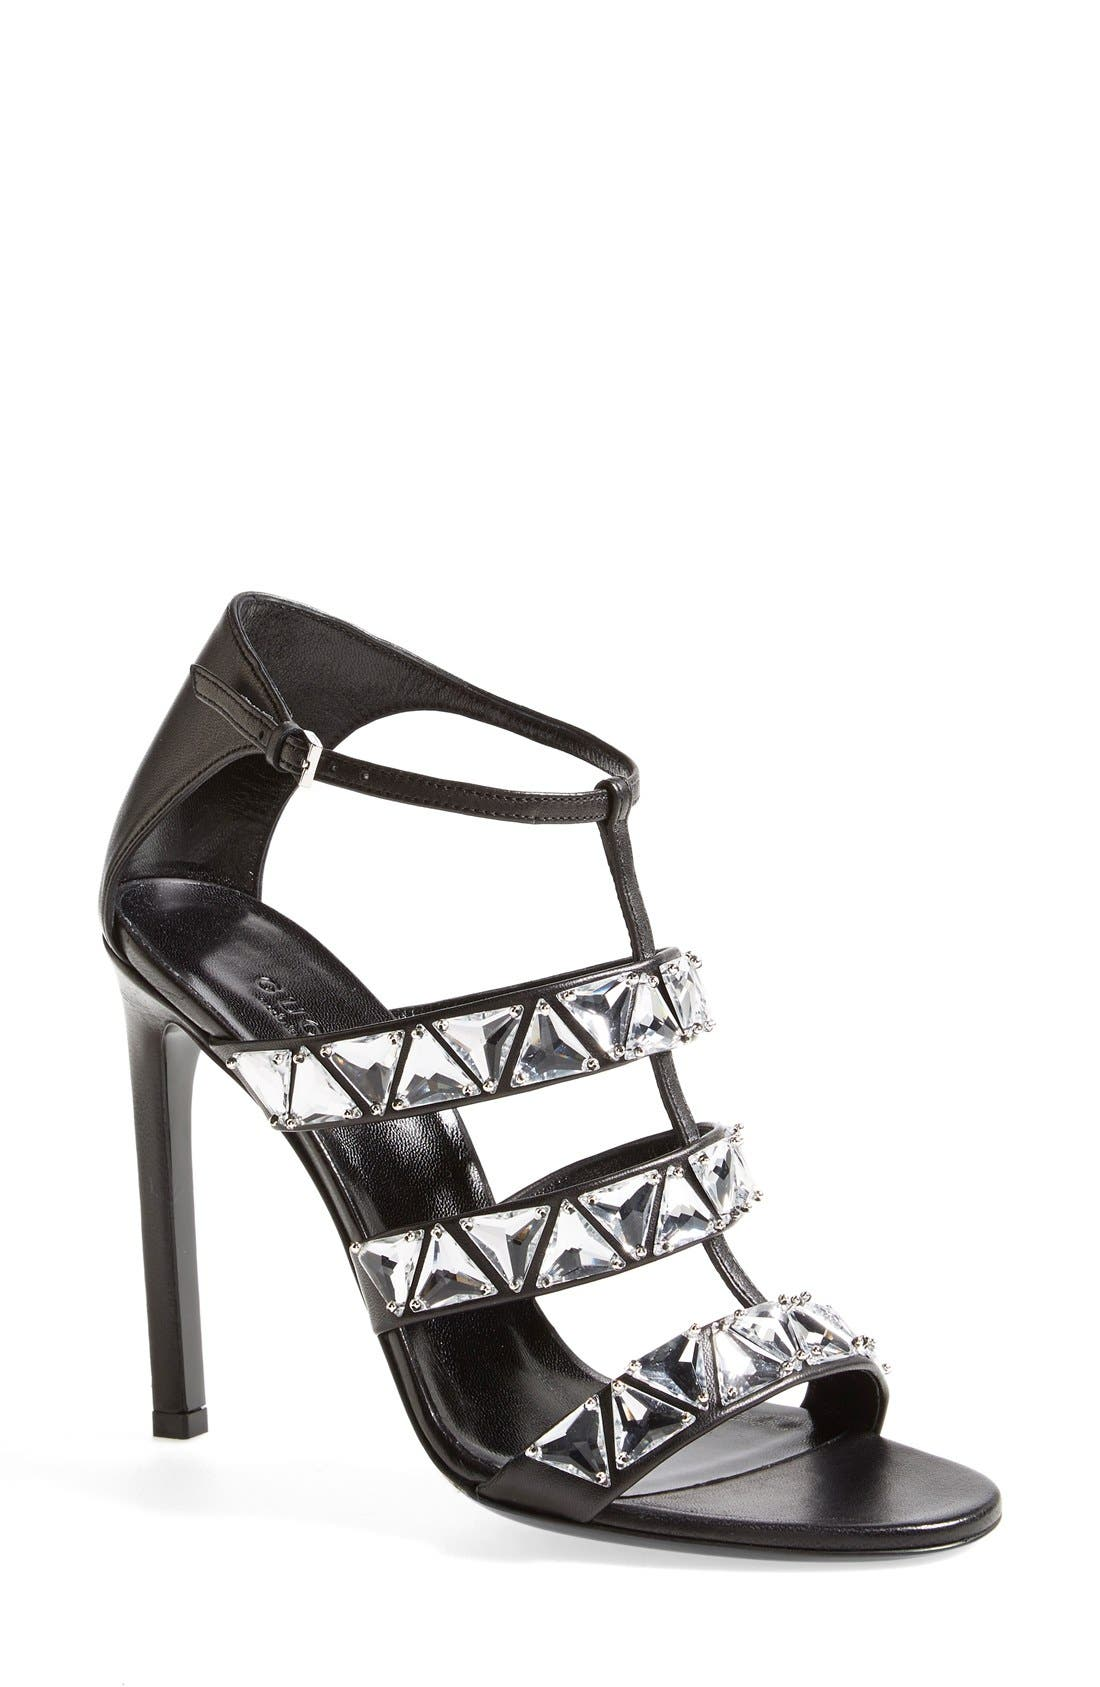 Alternate Image 1 Selected - Gucci 'Night Out' Sandal (Women)